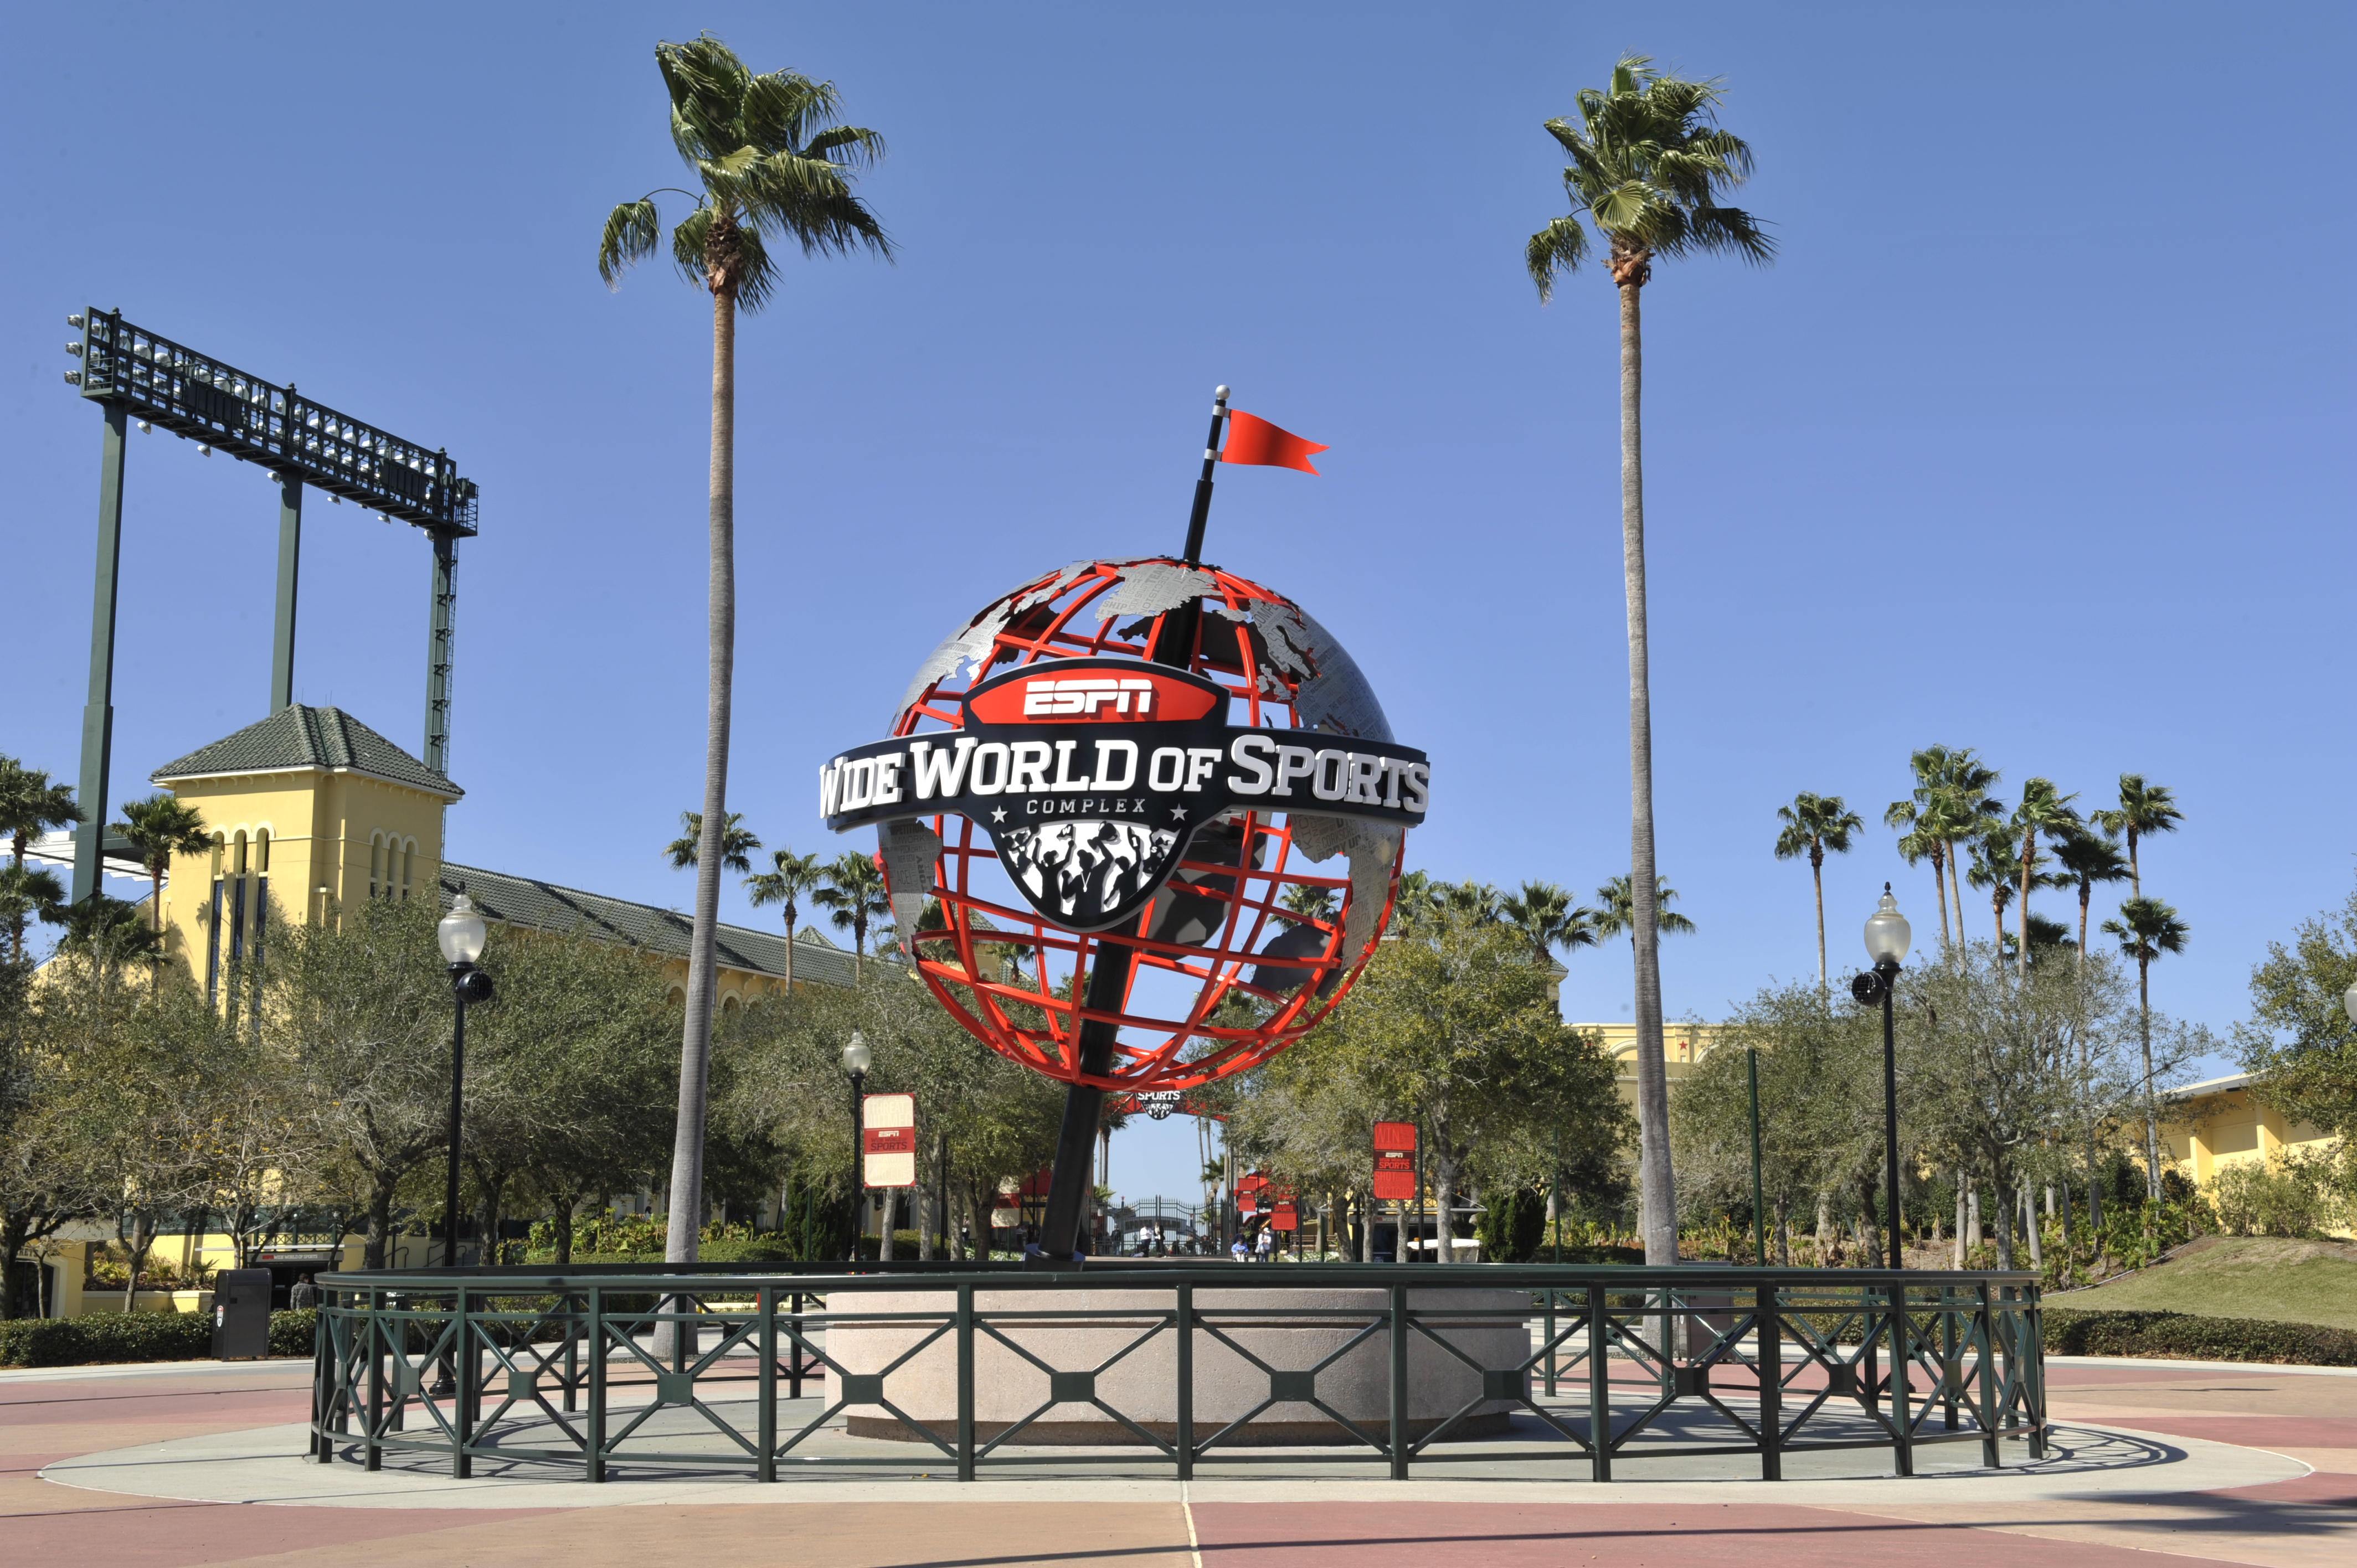 ESPN Wide World of Sports could be a self-contained campus for the rest of the NBA season